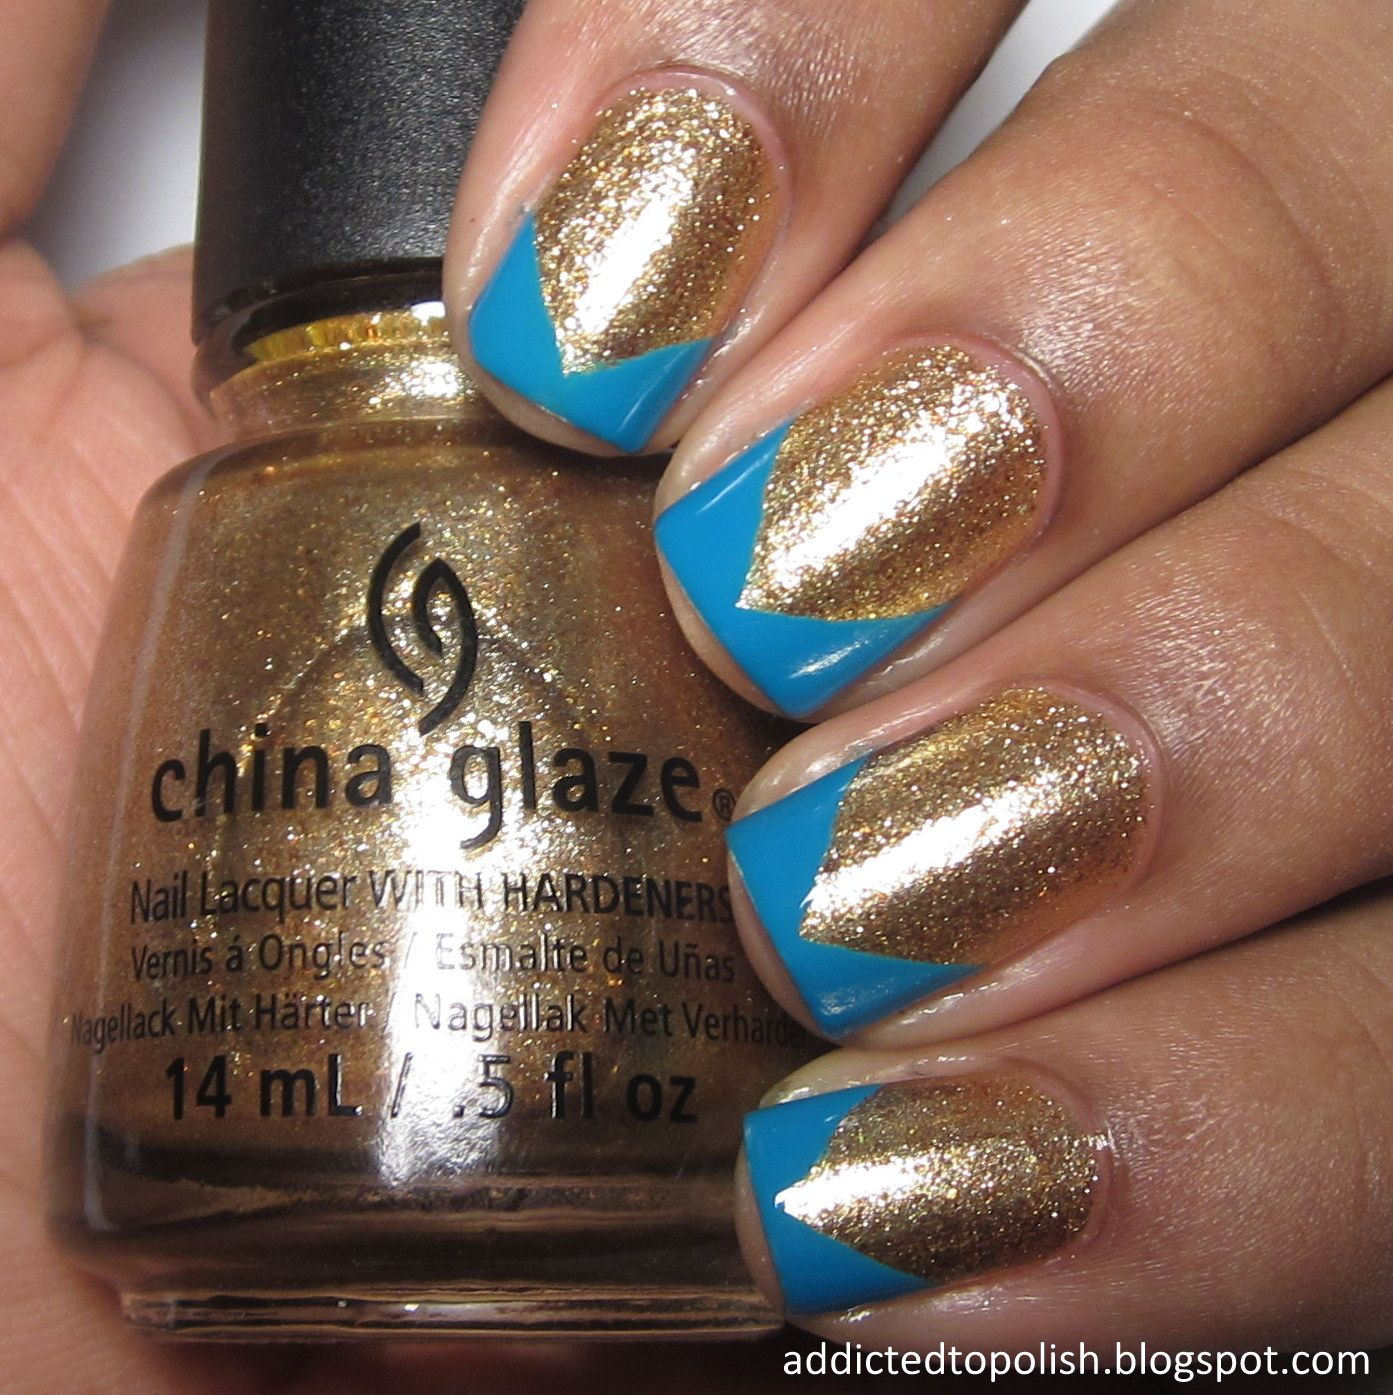 nails.quenalbertini: Twinsie Tuesday Celebrity Nails | Addicted to Polish